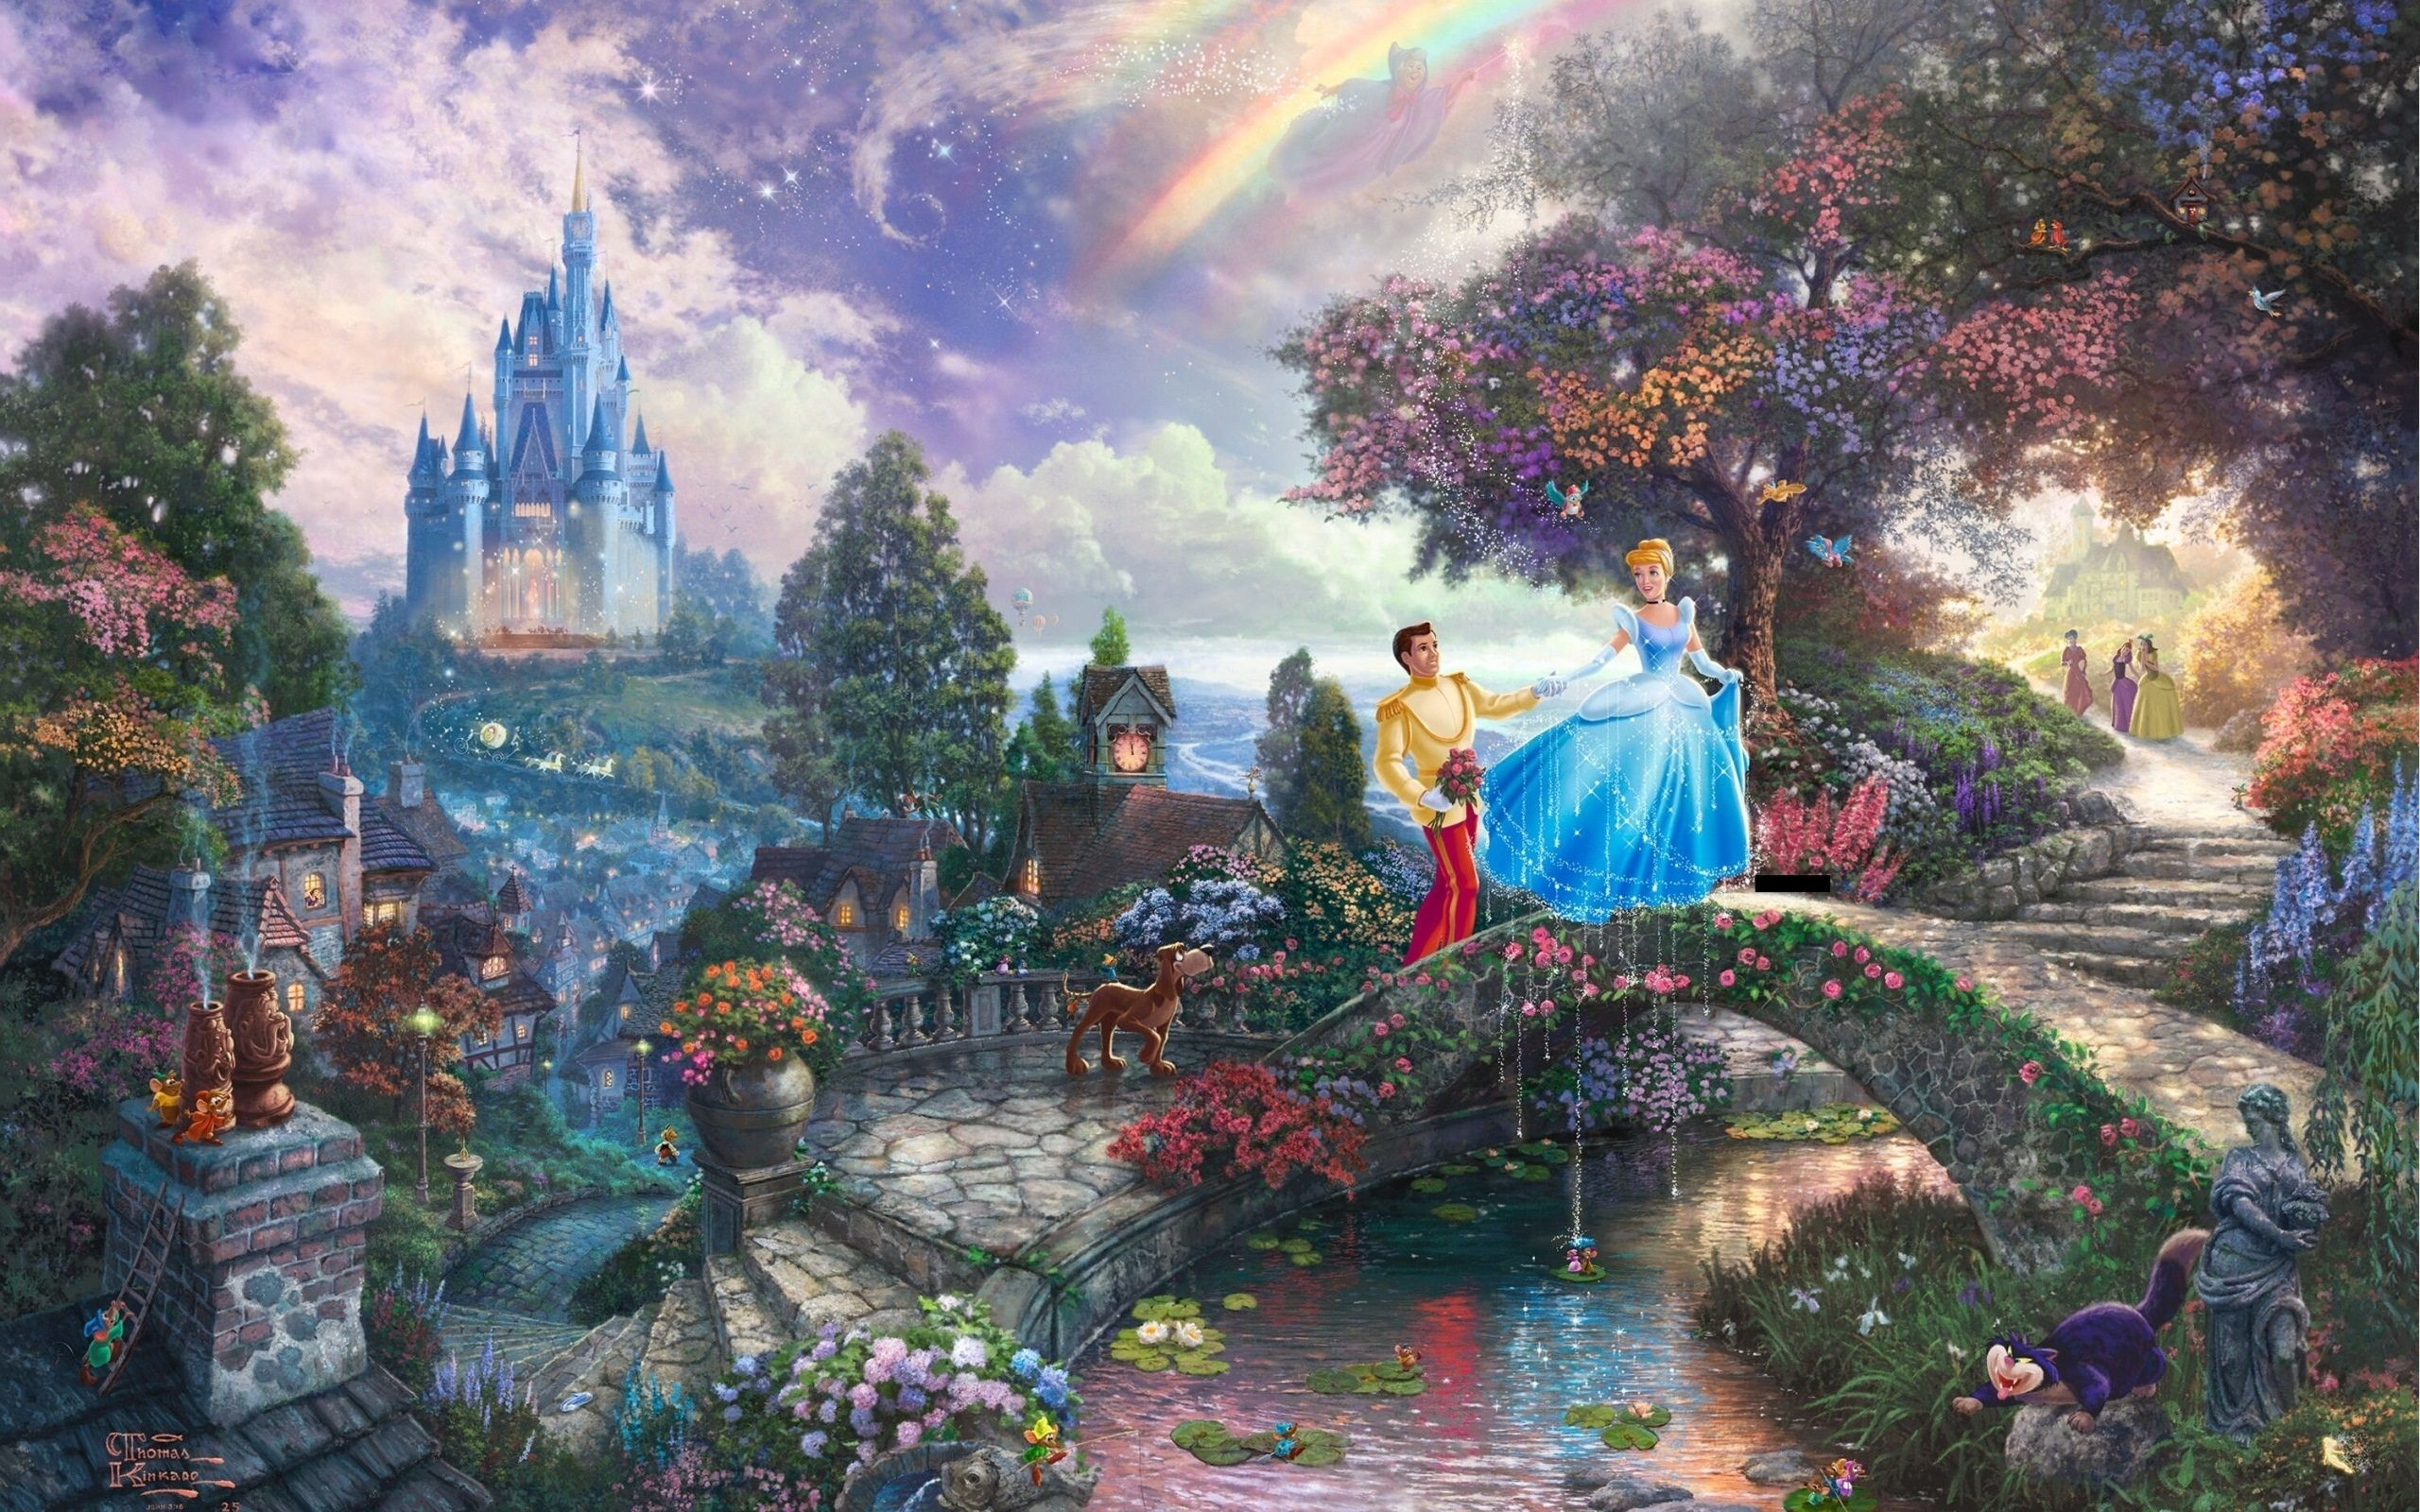 2560x1600 Thomas Kinkade Disney Dreams Collection Wallpaper Thomas kinkade